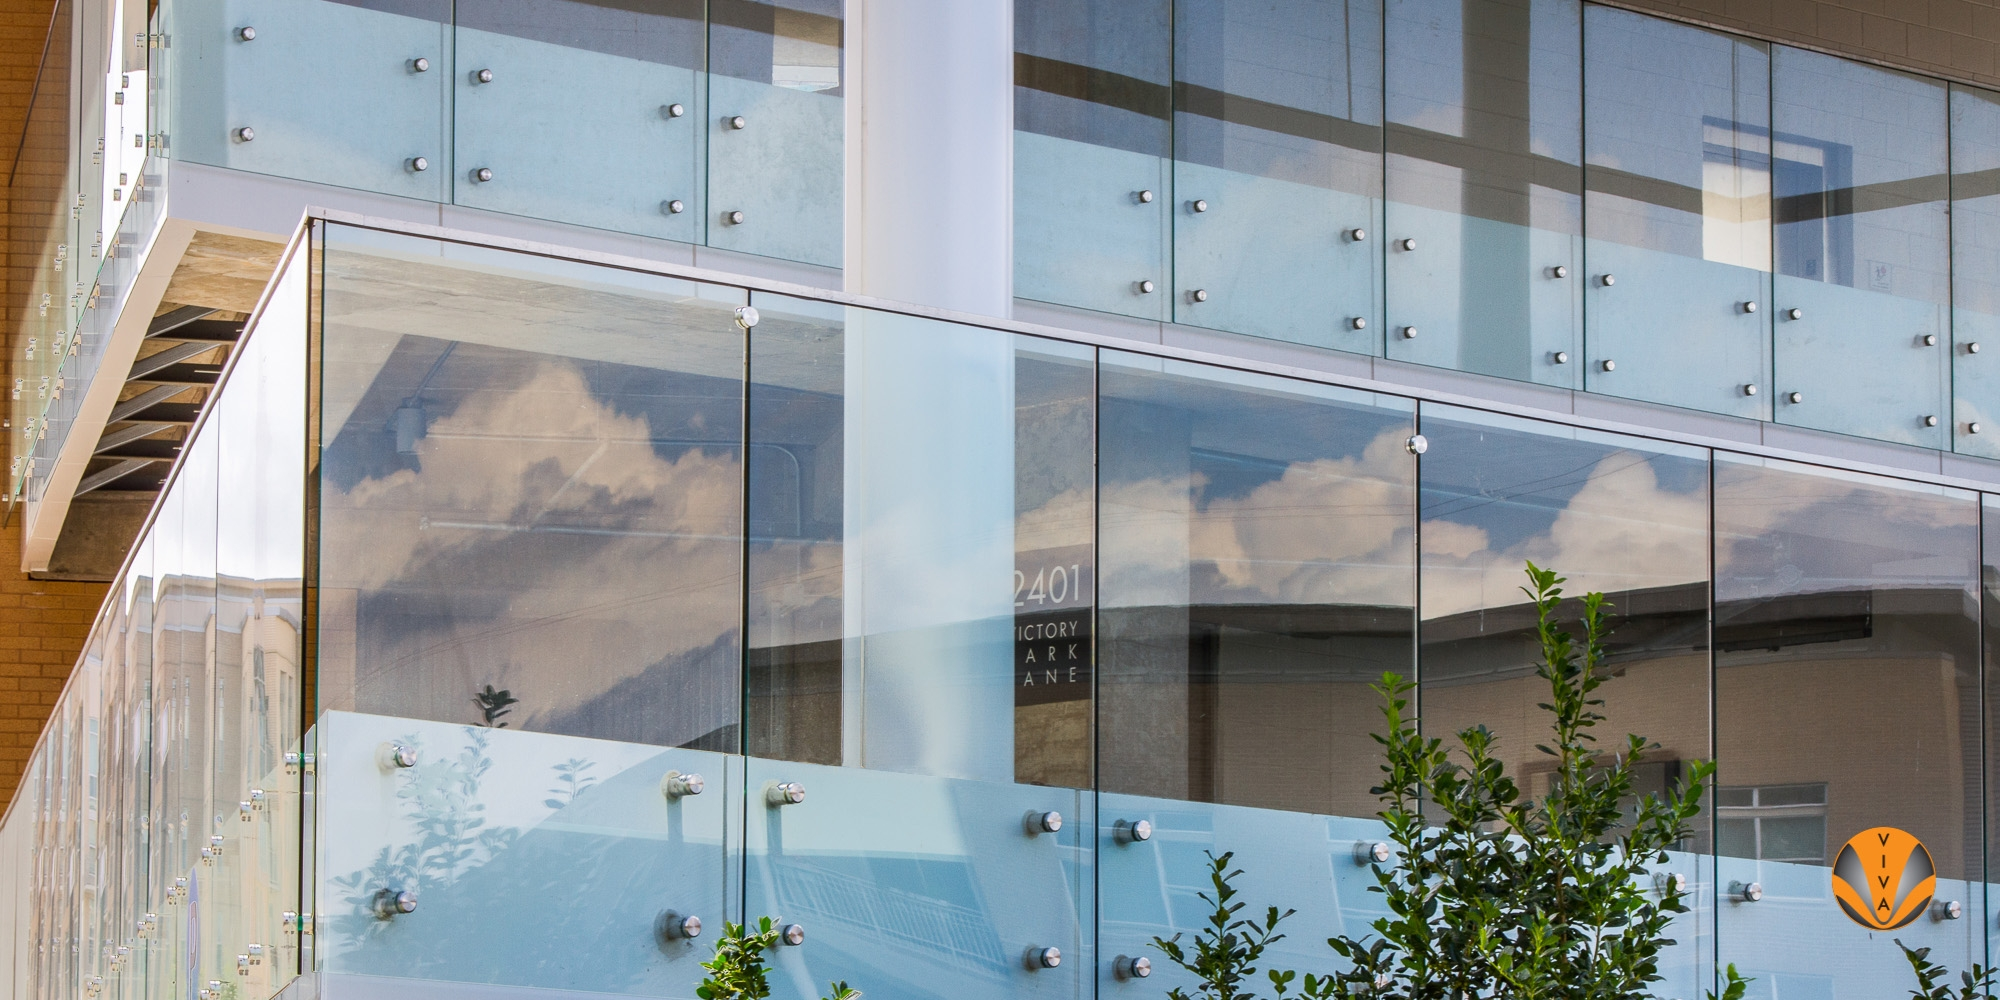 View Button Glass Balcony Railing Victory Park Block D Dallas   Glass Handrails For Balcony   Glass Guardrail   Exterior   Stainless Steel   Staircase   Veranda